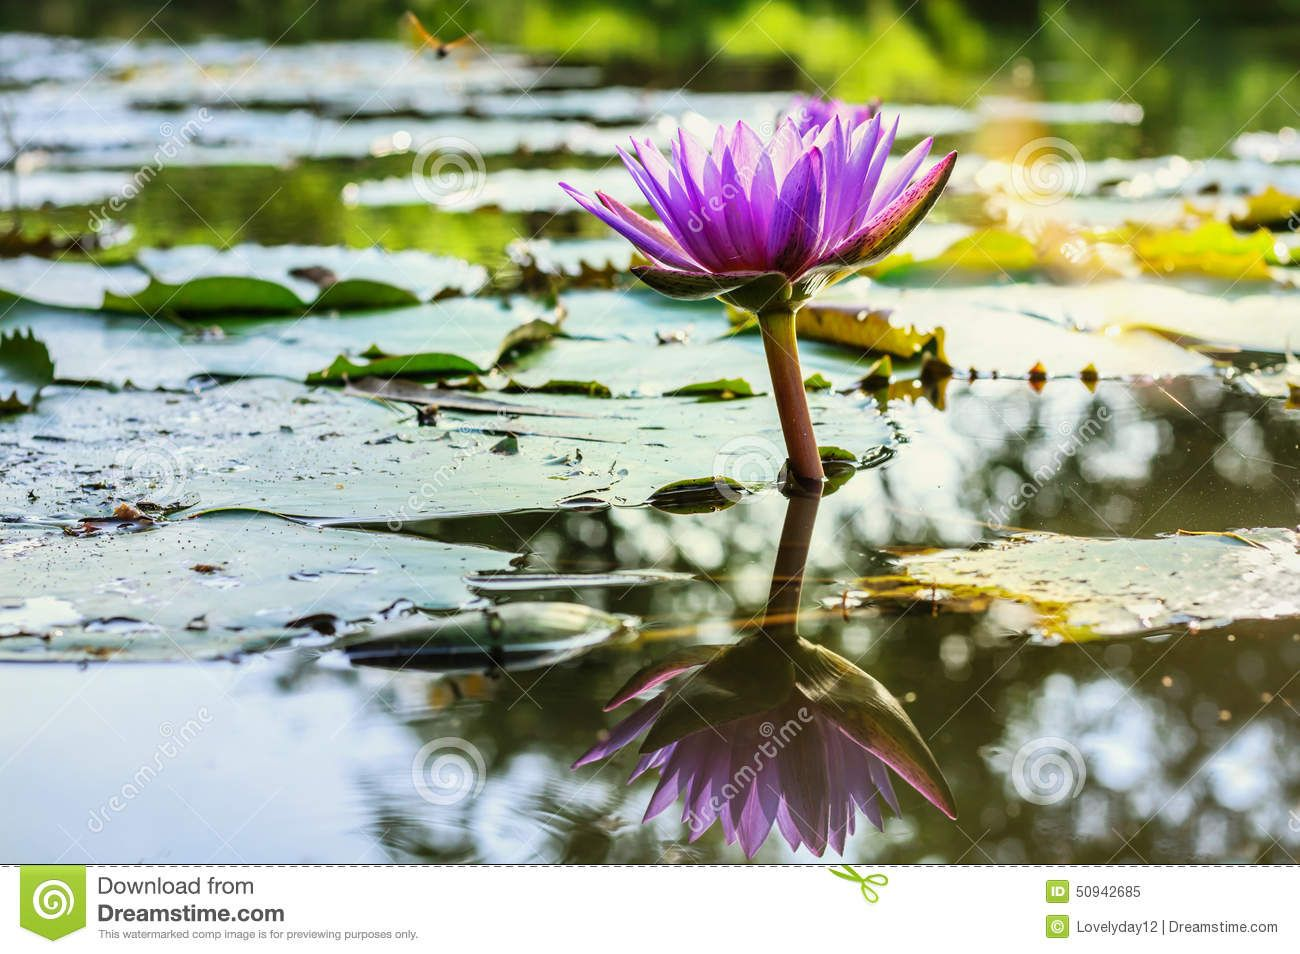 water lily pond - Google Search